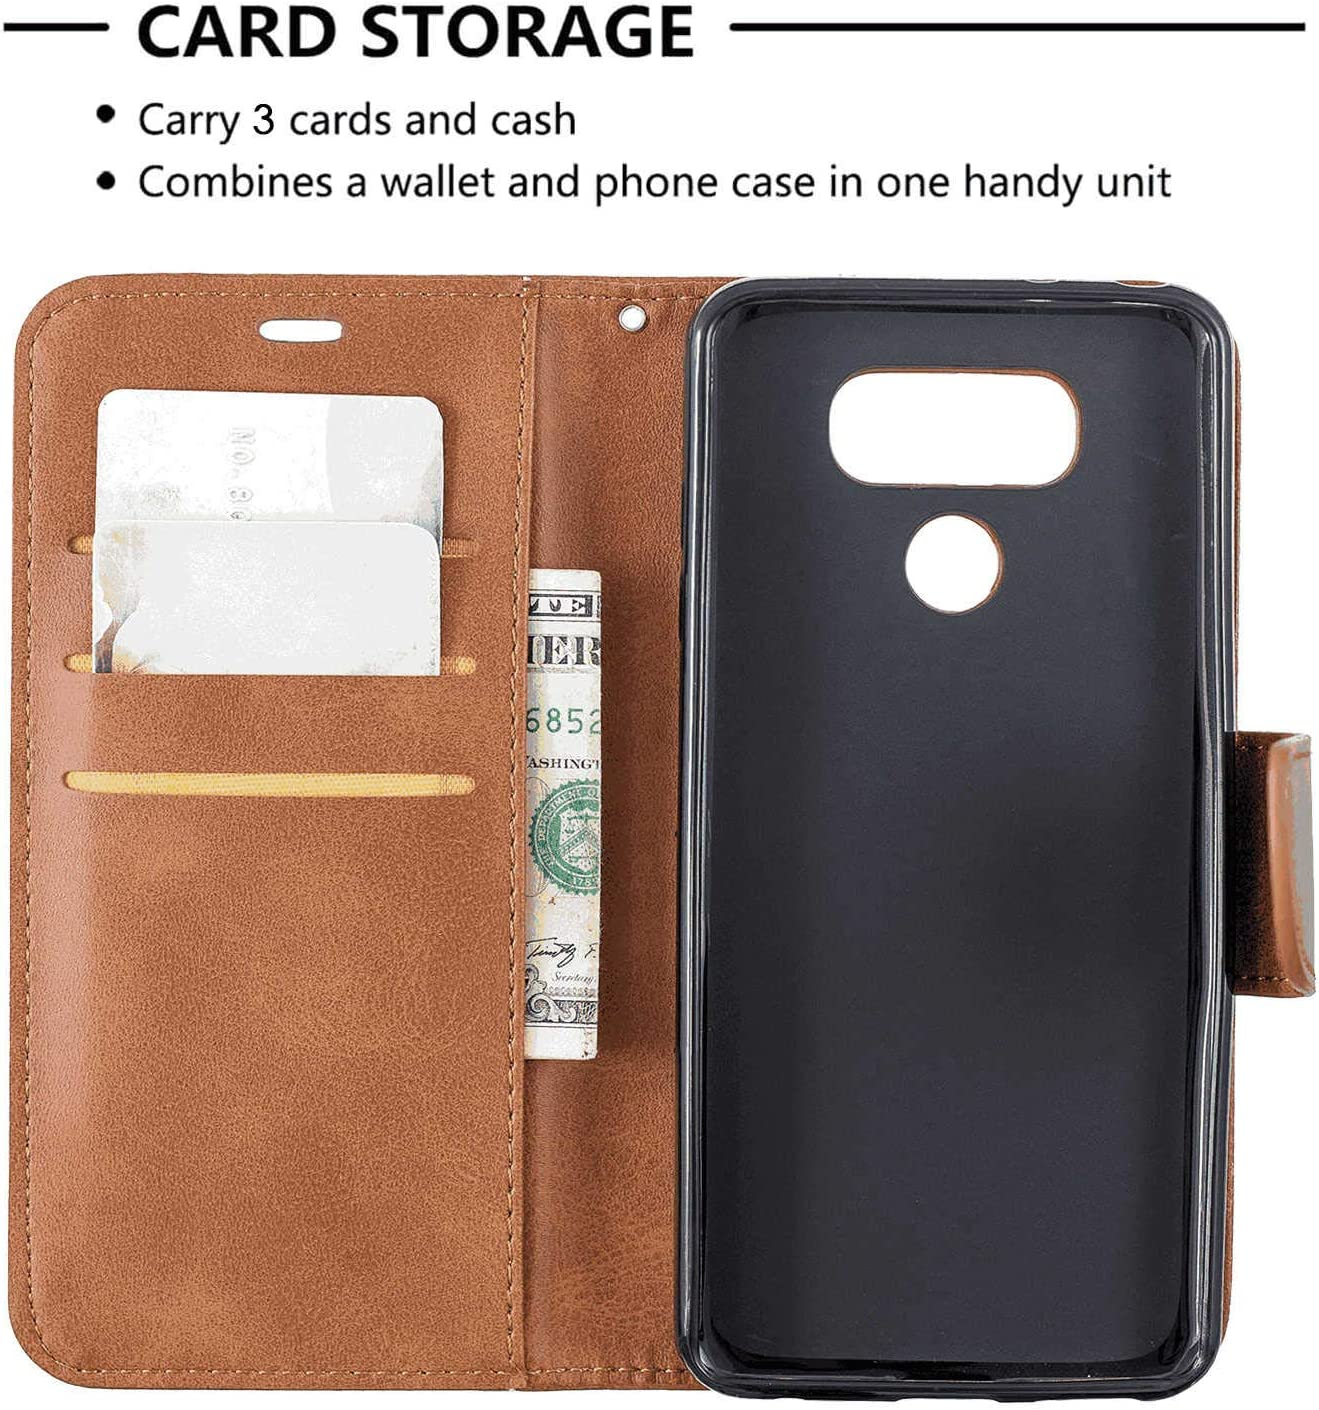 Flip Case for iPhone 8 Leather Cover Business Gifts Wallet with Extra Waterproof Underwater Case